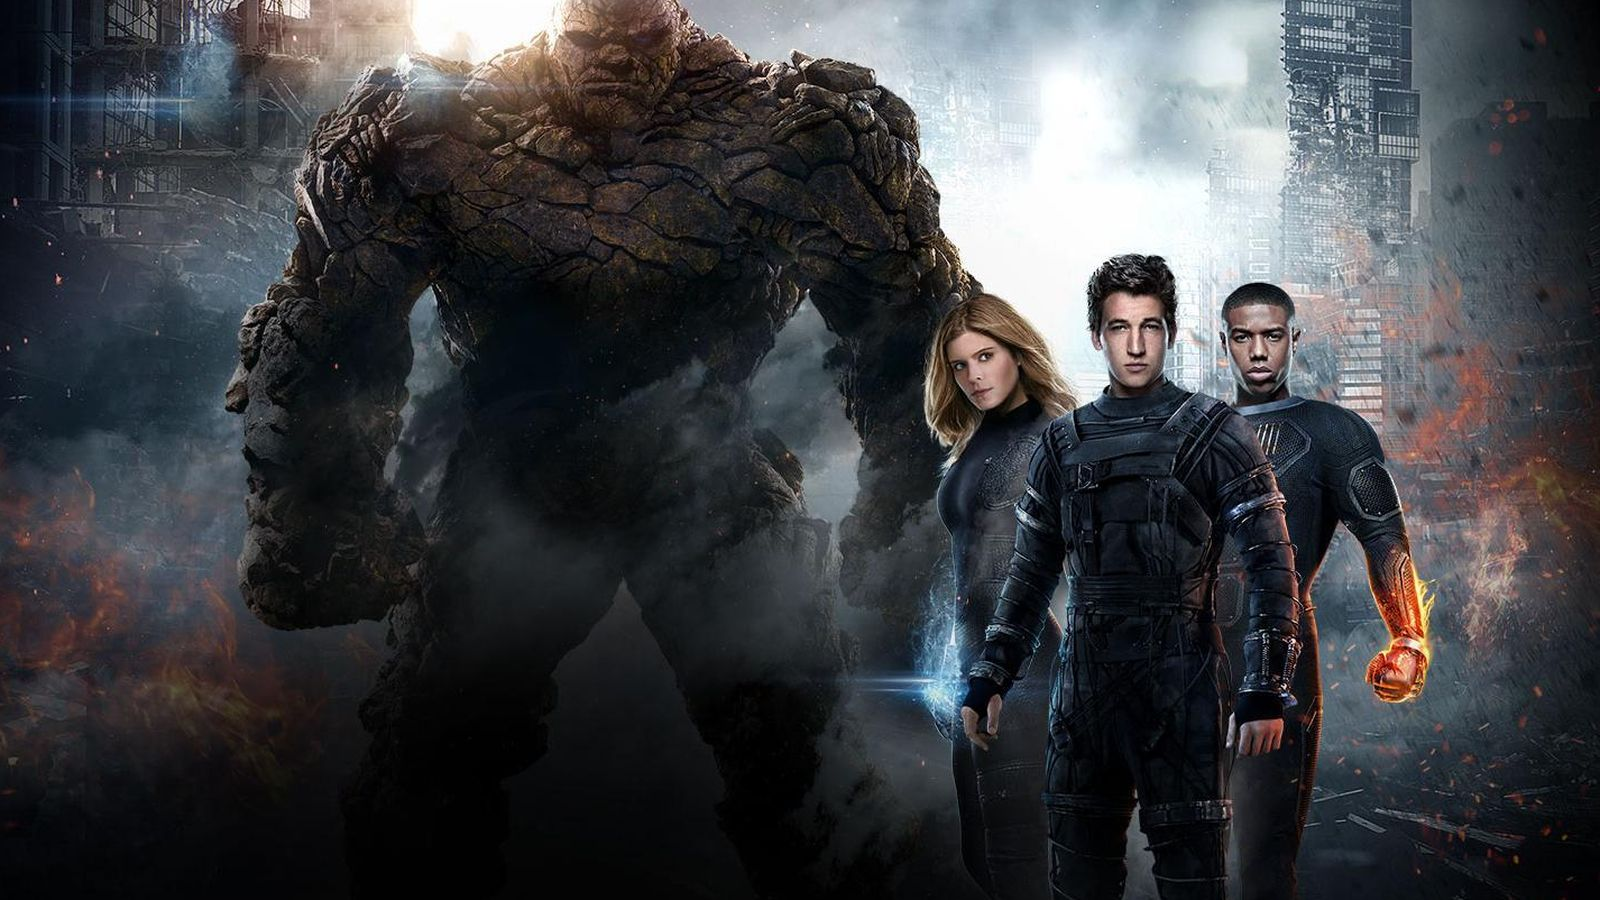 Pictures of the fantastic four M: Fantastic Four Blu-ray: Ioan Gruffudd